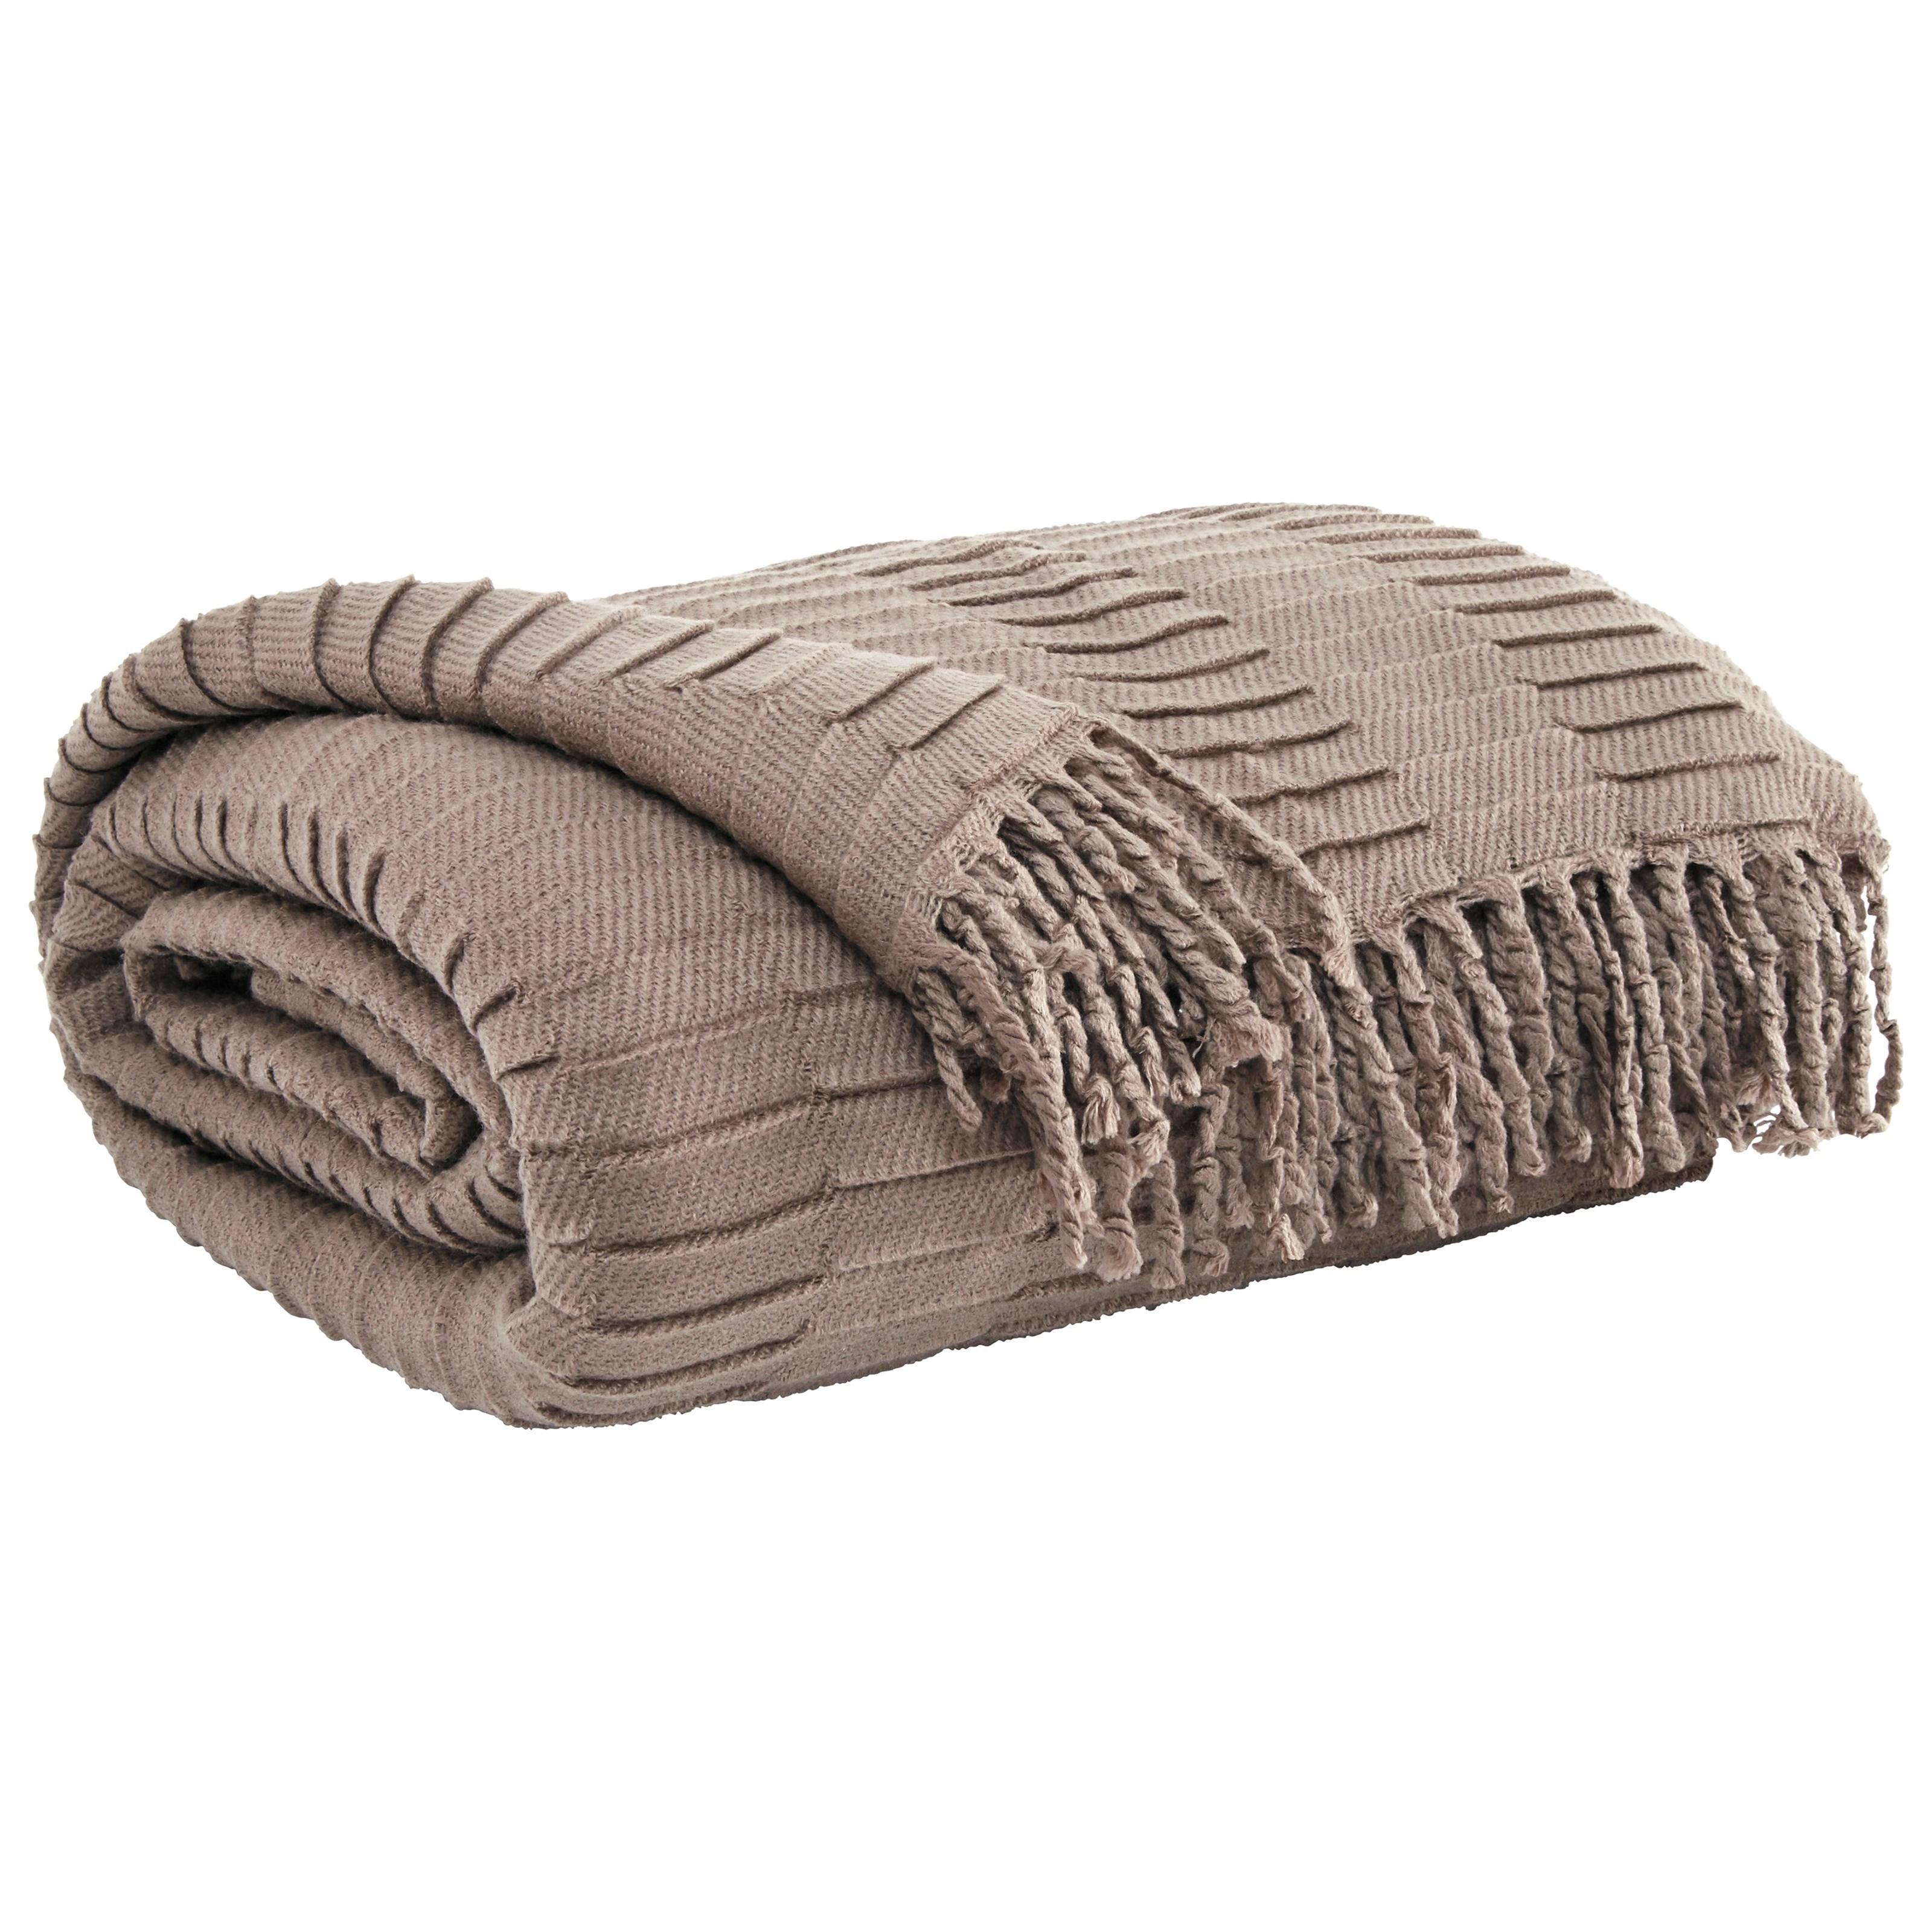 Signature Design by Ashley Throws Mendez - Taupe Throw - Item Number: A1000614T